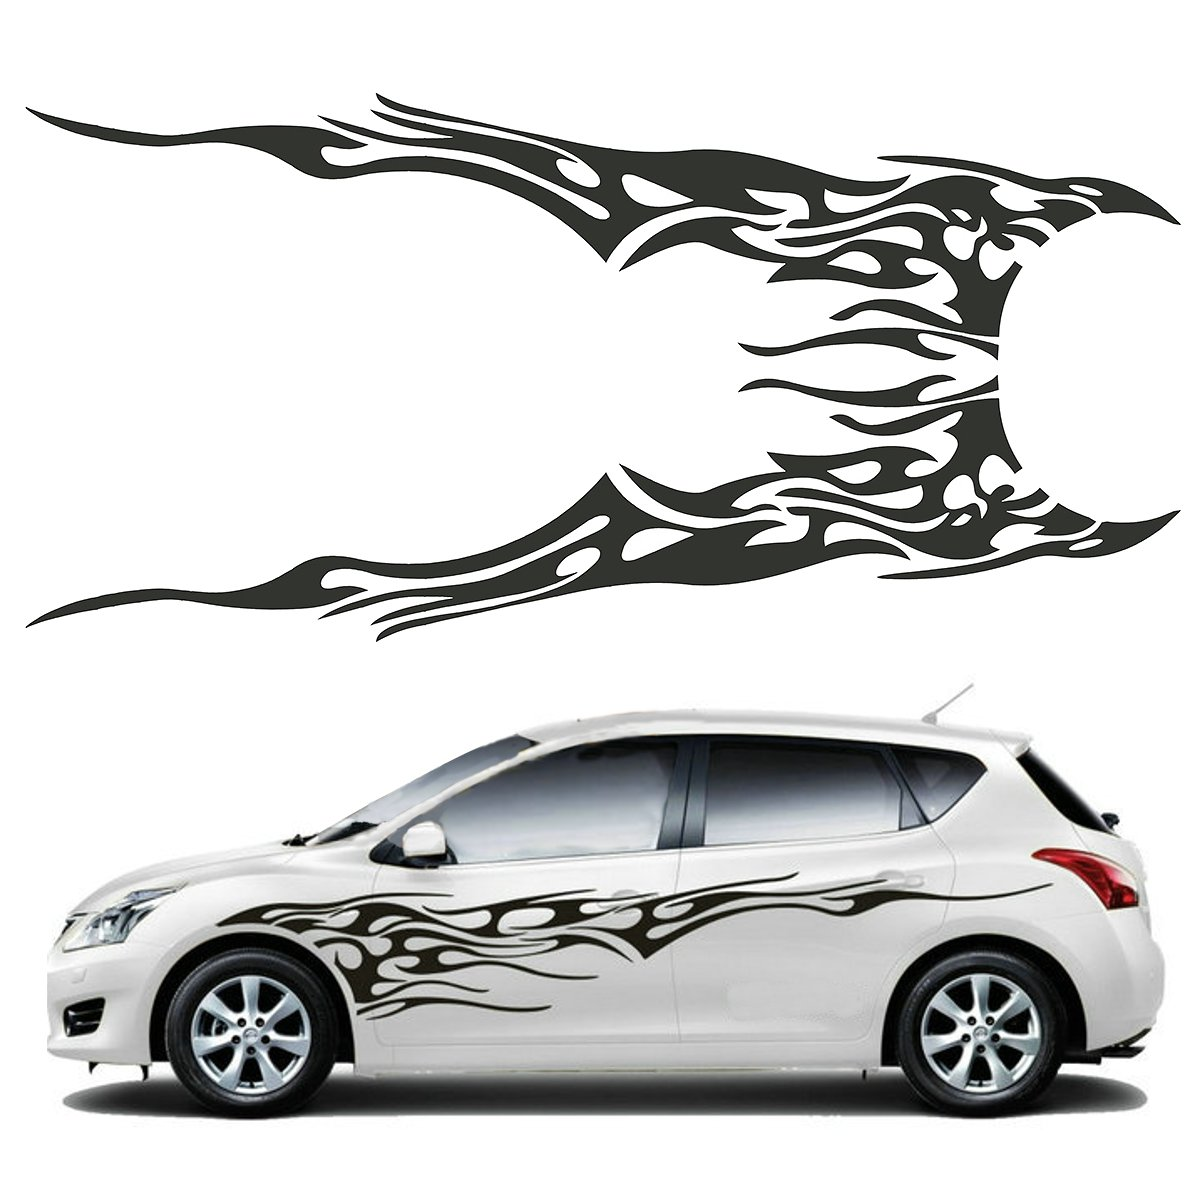 2x 210 5 x 48cm black universal car flame graphics vinyl car side sticker decal waterproof